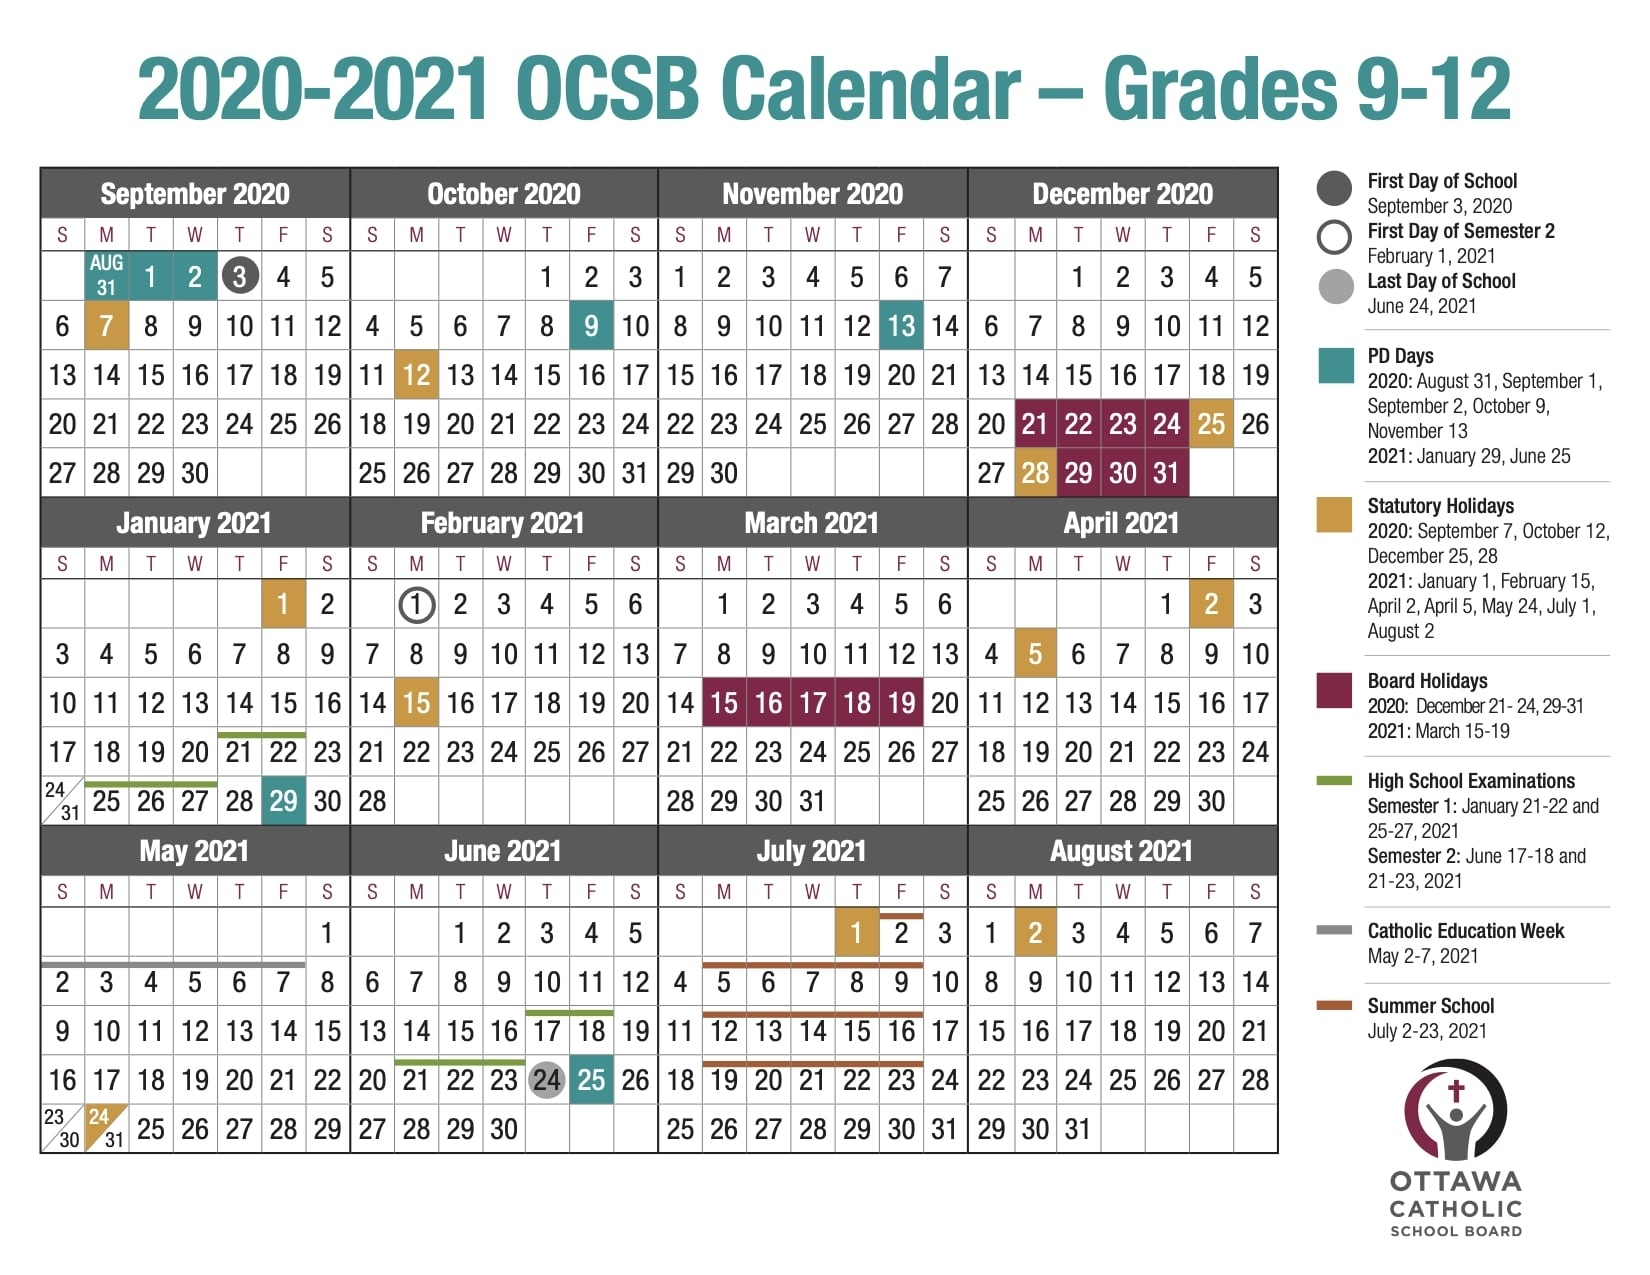 School Year Calendar From The Ocsb with Word Church Events Calender For 2020